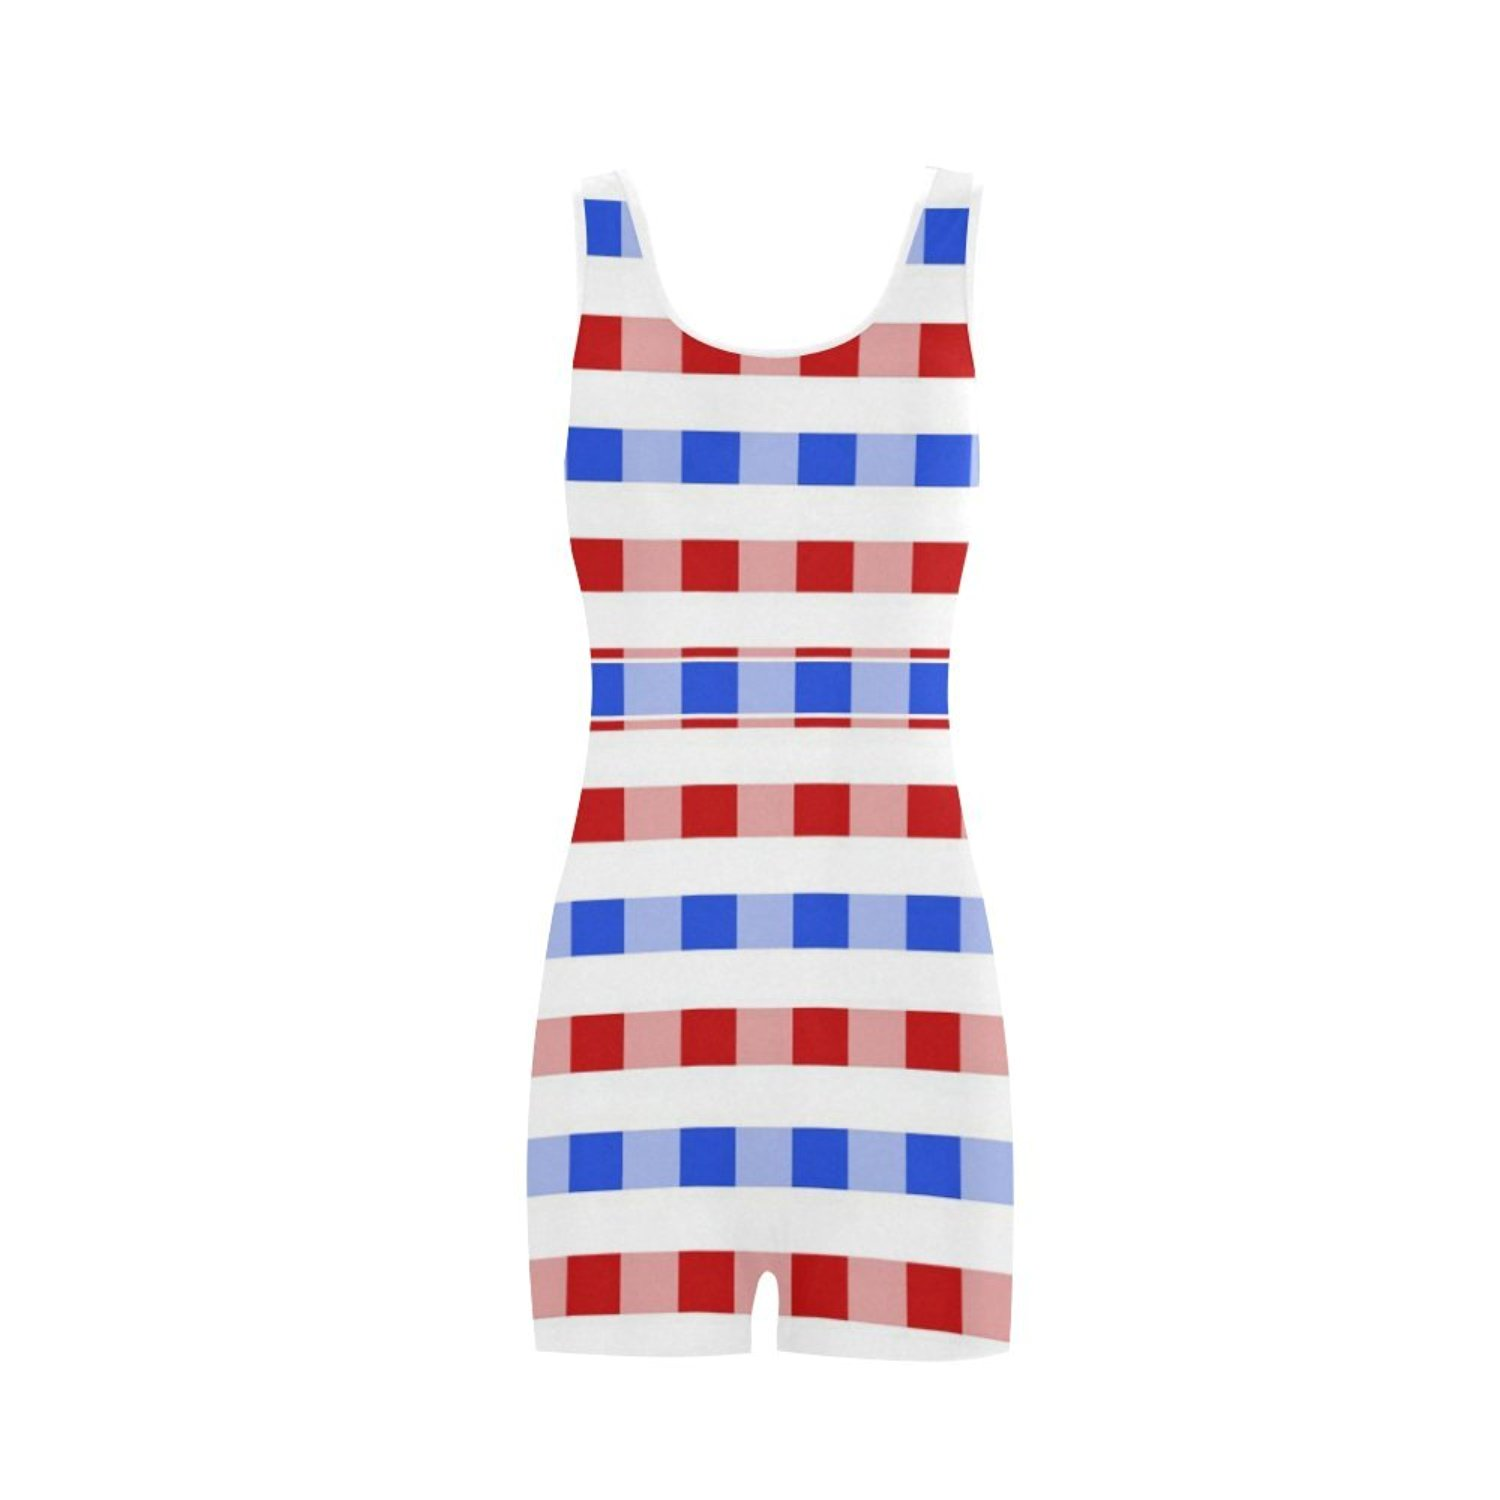 09ef16810b38b Get Quotations · Find Arts Customized Red White Blue Square Pattern Classic  One Piece Swimwear Swimsuit Bathing Suit Beachwear